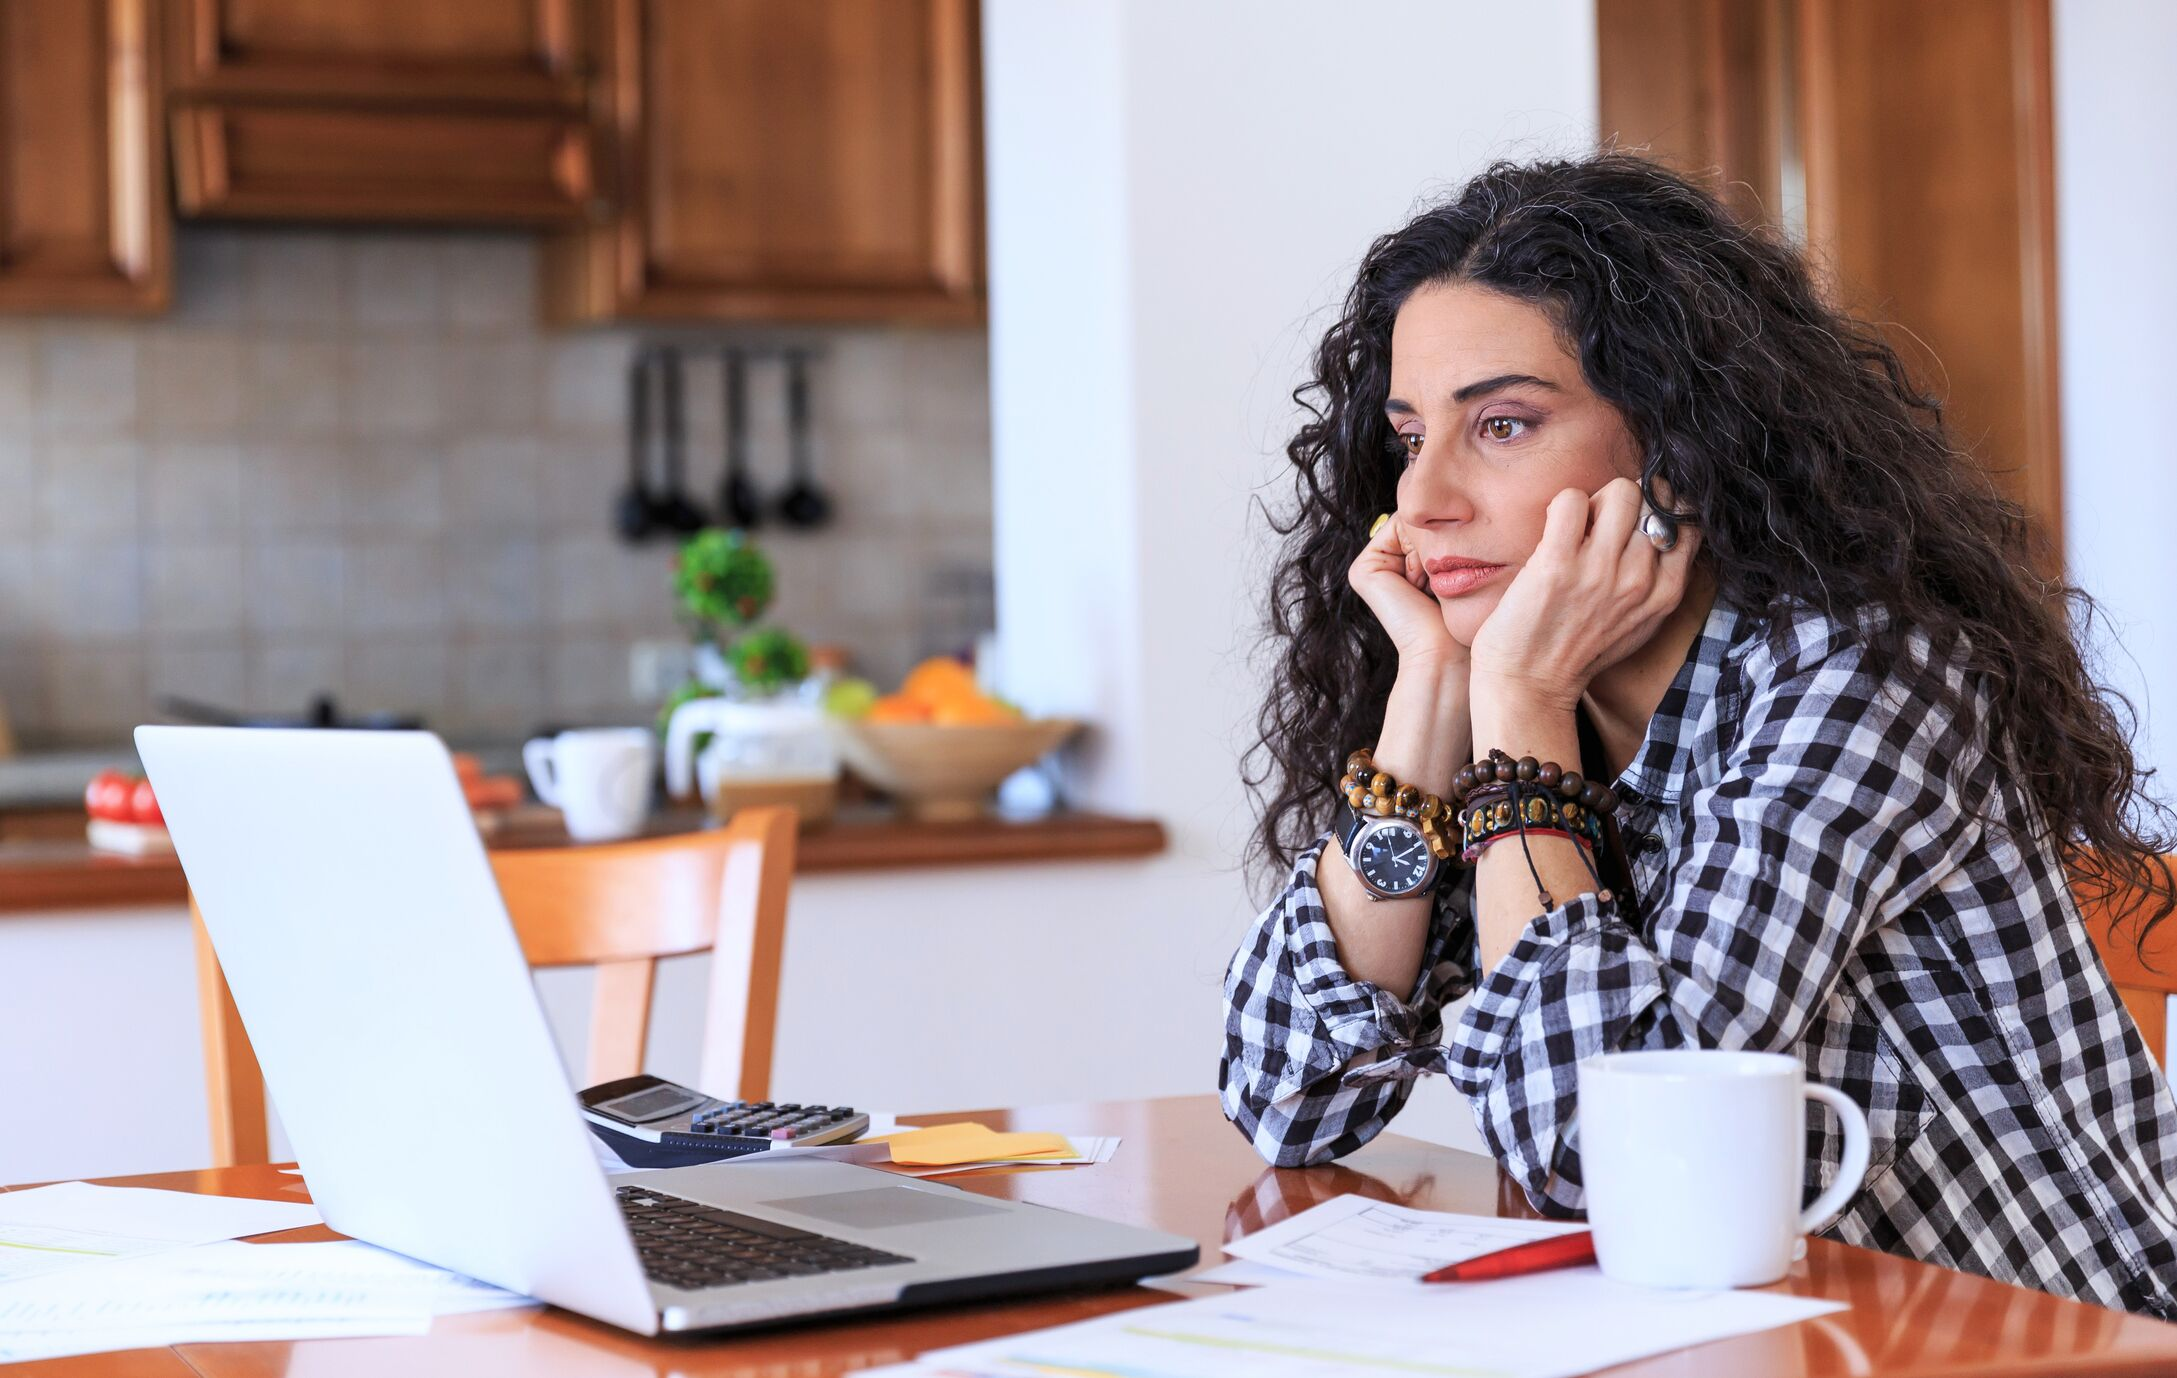 Lady looking at laptop worrying about finances